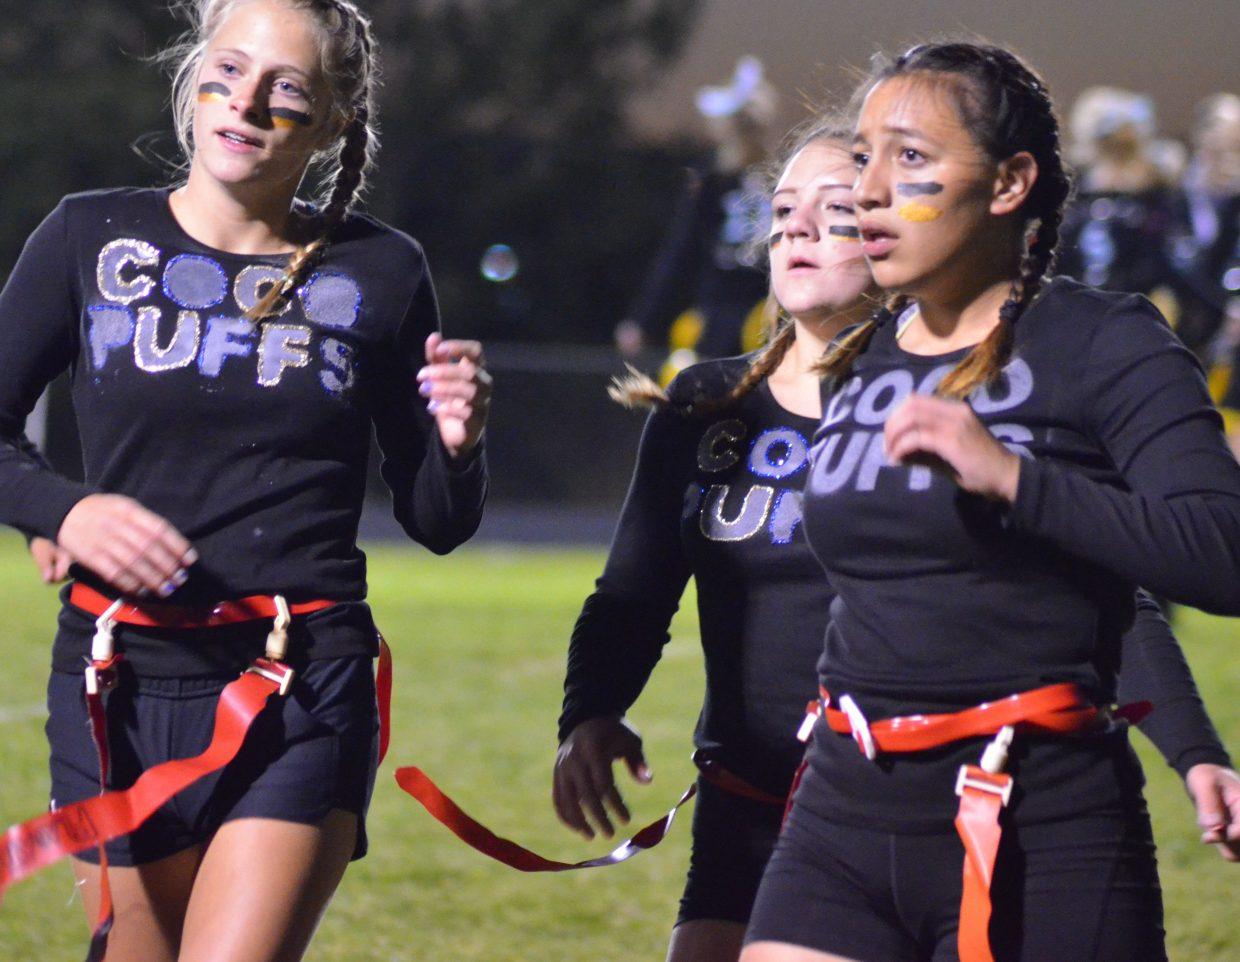 Members of Coco Puffs come off the field for a huddle during Moffat County High School's Monday Powder Puff Football.